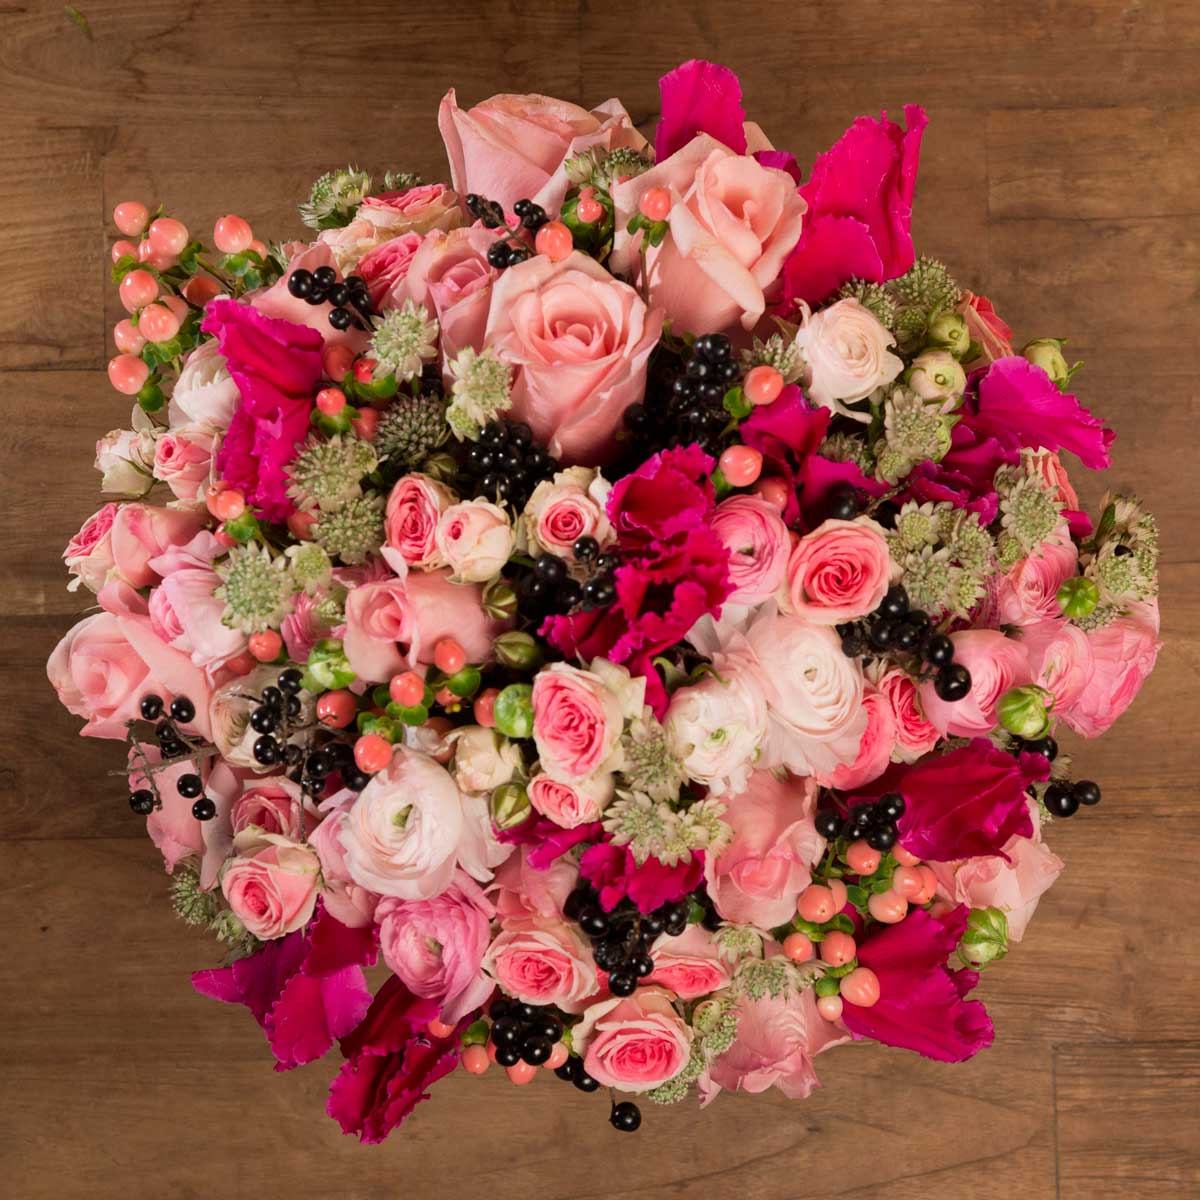 Fleurs de paris ss84 jornalagora for Bouquet fleuriste